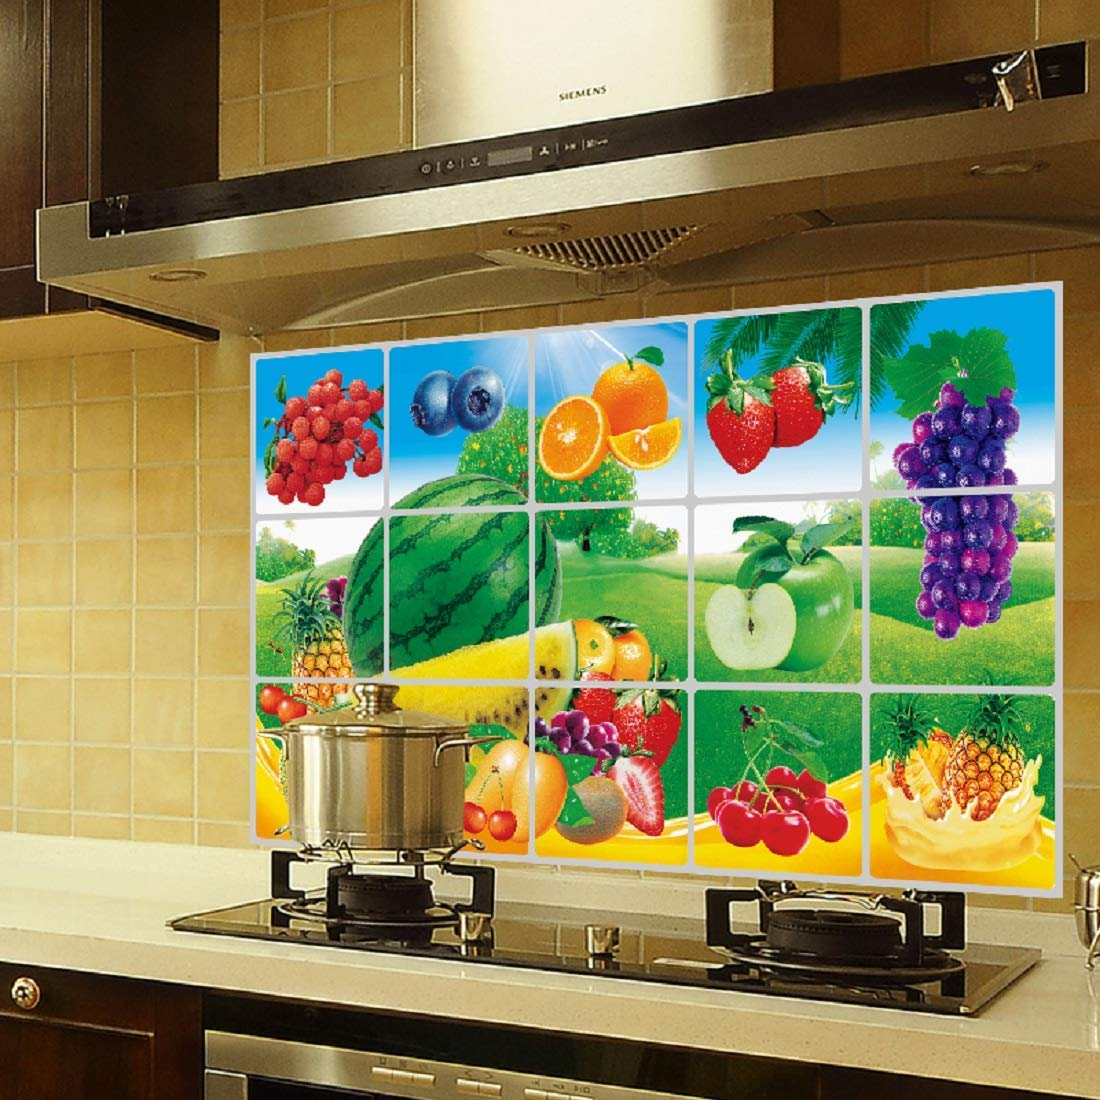 Jaamso Royals Removable Kitchen Oil Proof Decal Sticker Heat Resistant Waterproof Tile Sticker Aluminium Foil Wall Sticker Fruits 45 Cm X 75 Cm 3028 Jr08 Amazon In Home Kitchen